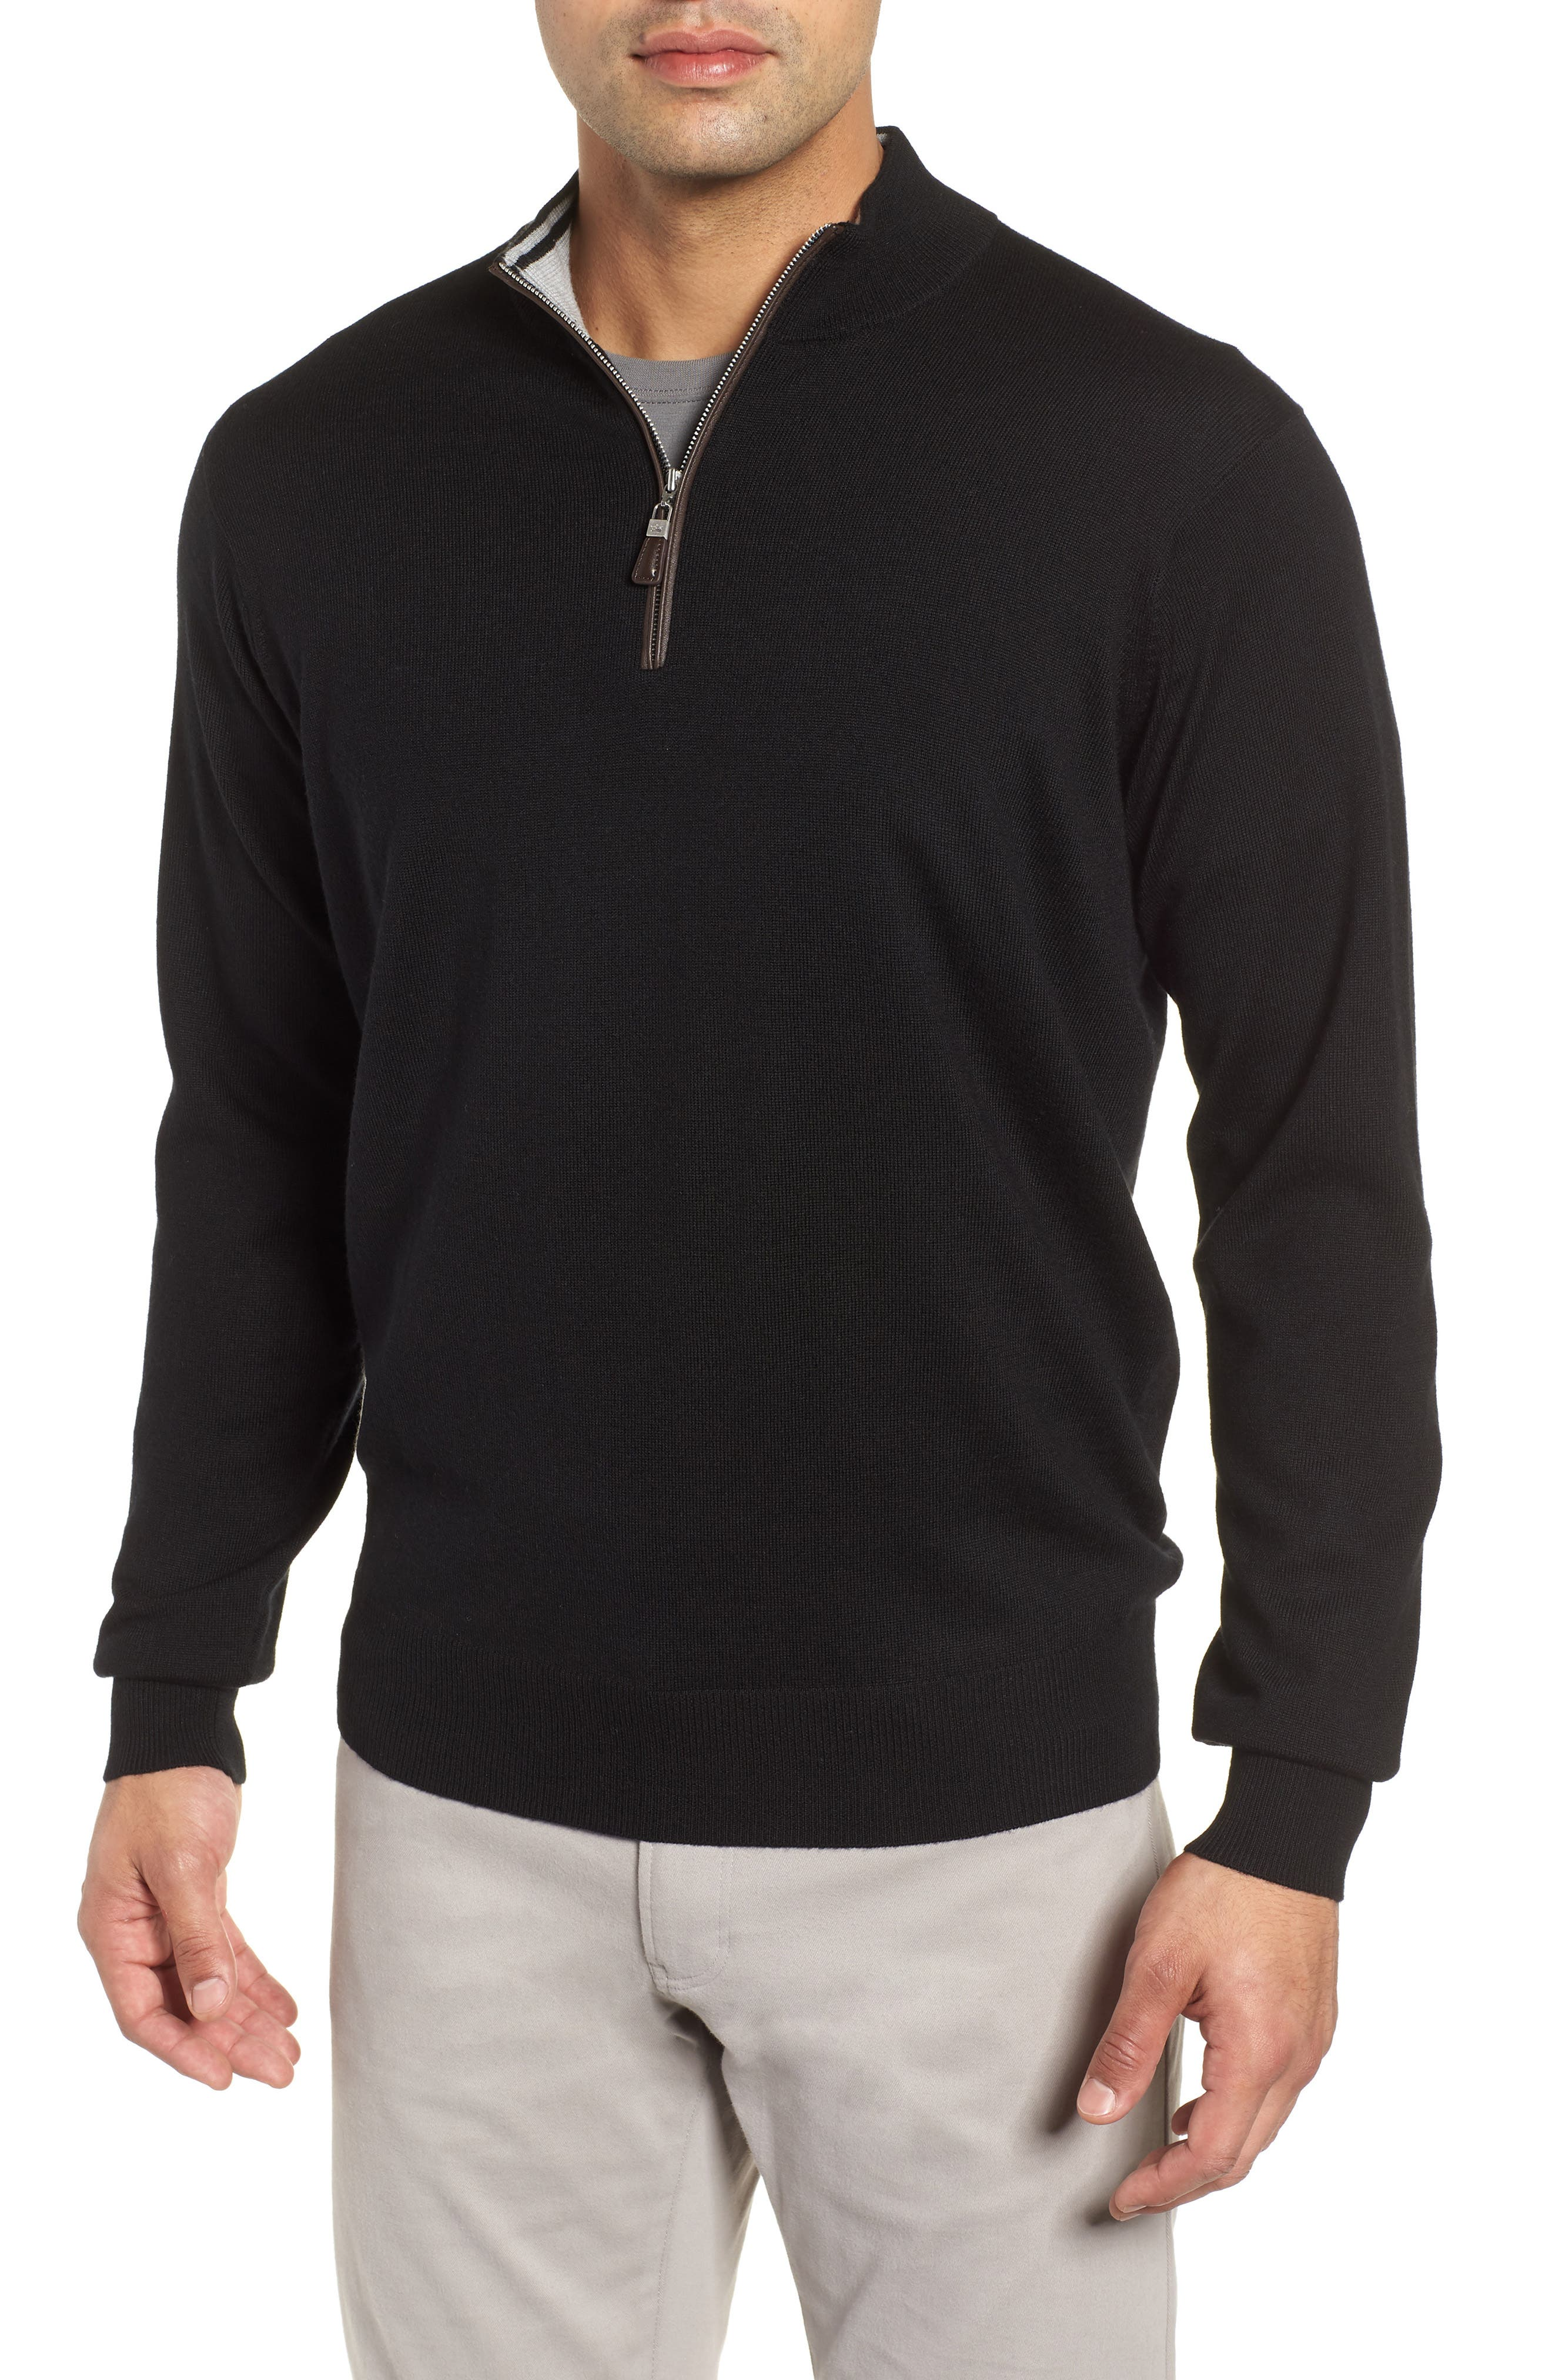 Crown Soft Wool Blend Quarter Zip Sweater,                             Main thumbnail 1, color,                             001